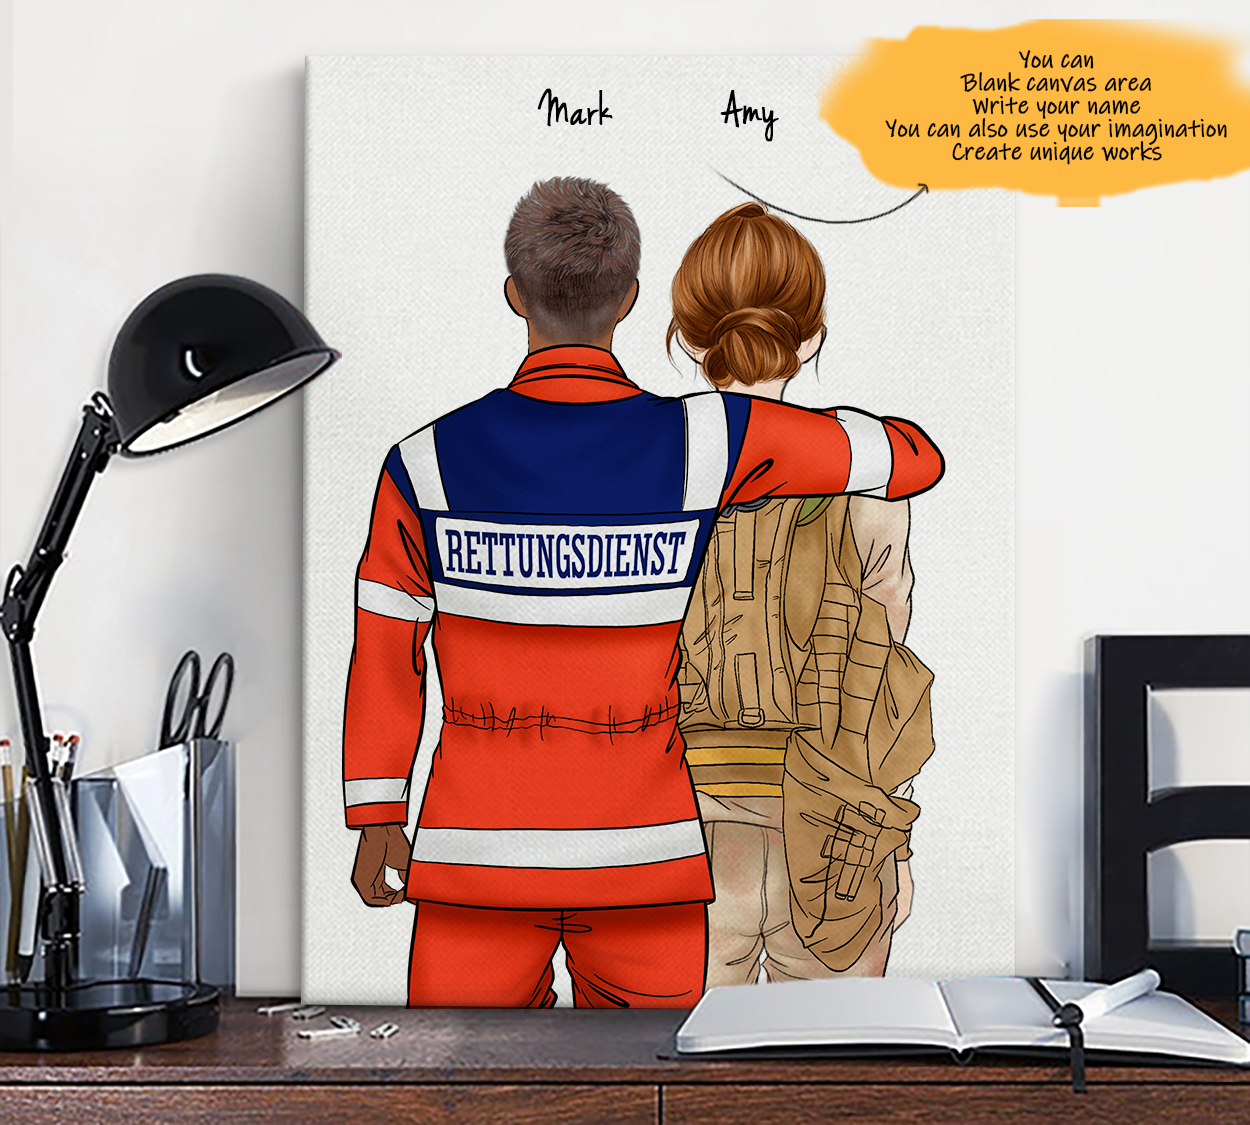 He is My Friend! Hand Draw Custom Canvas-Print Gift AmbulanceDriverGermany-Dark&Soldier1